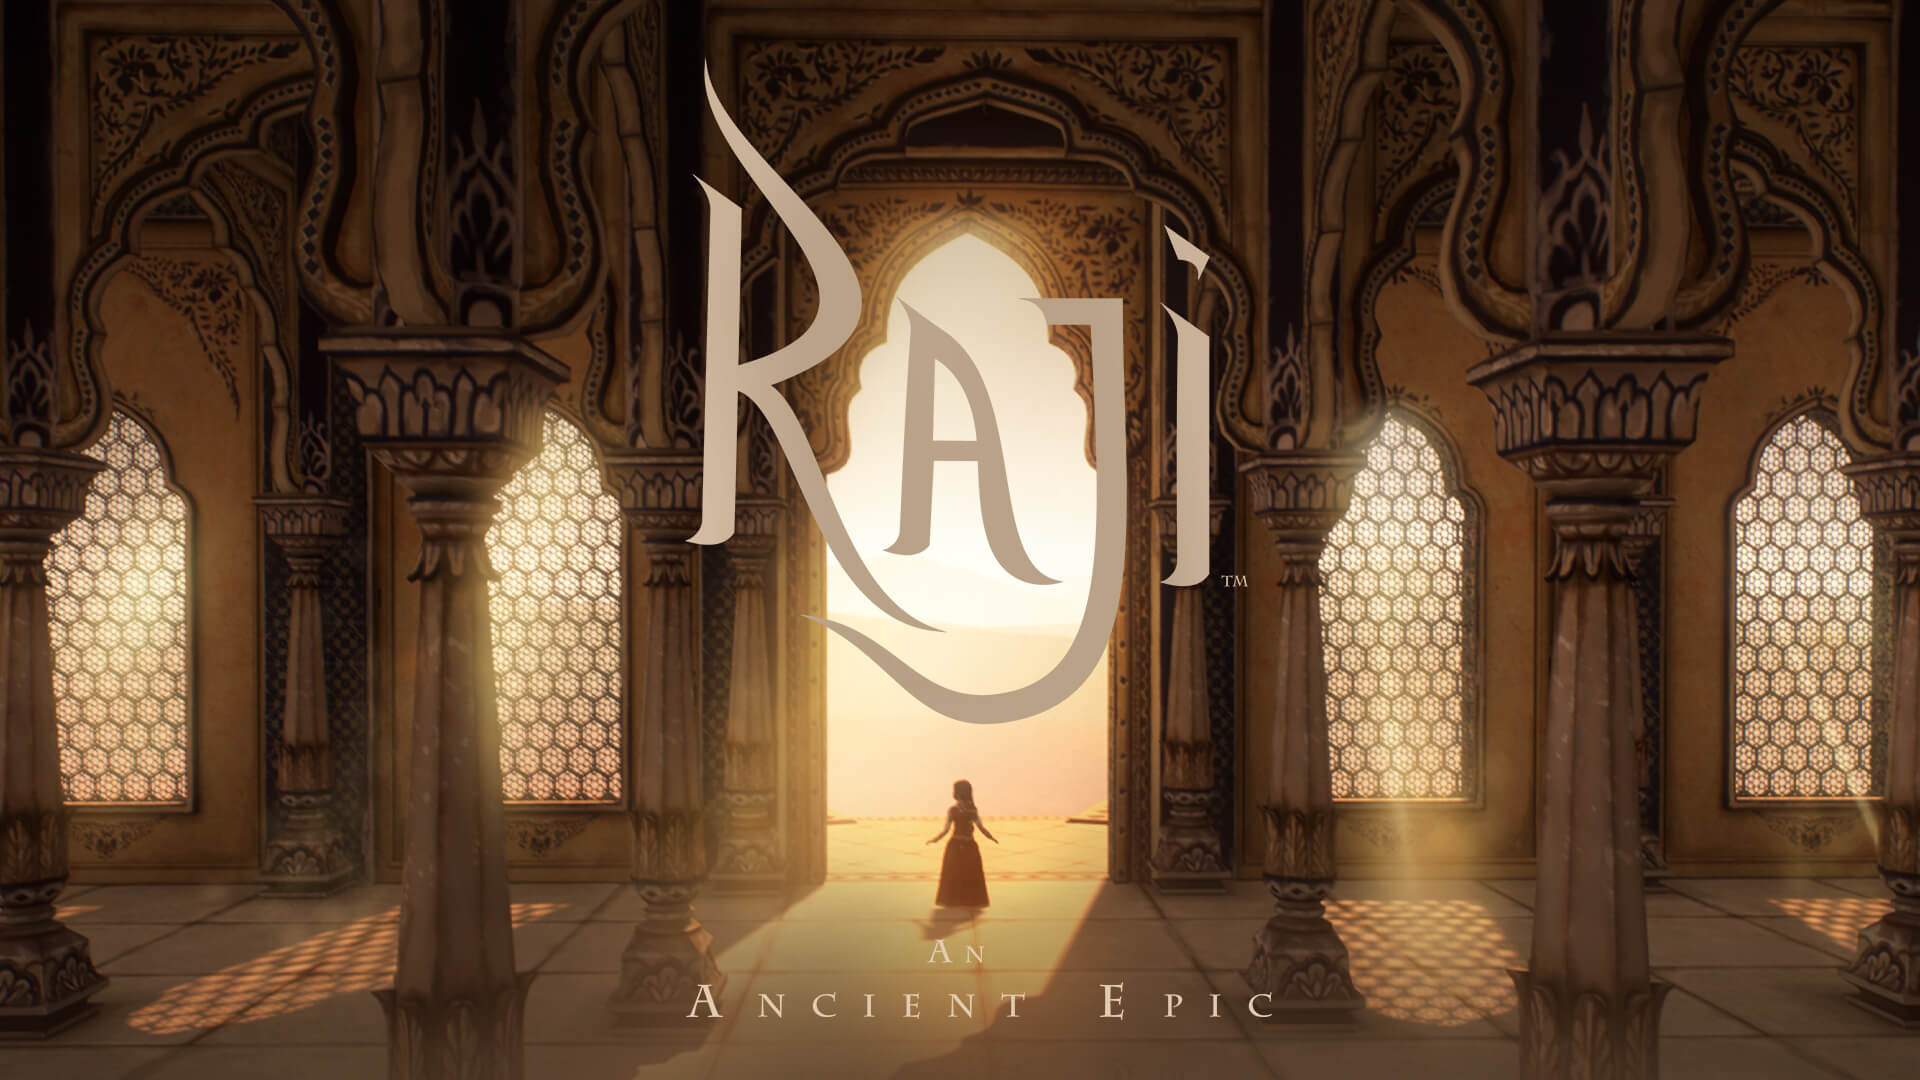 Raji: An Ancient Epic Free PC Download